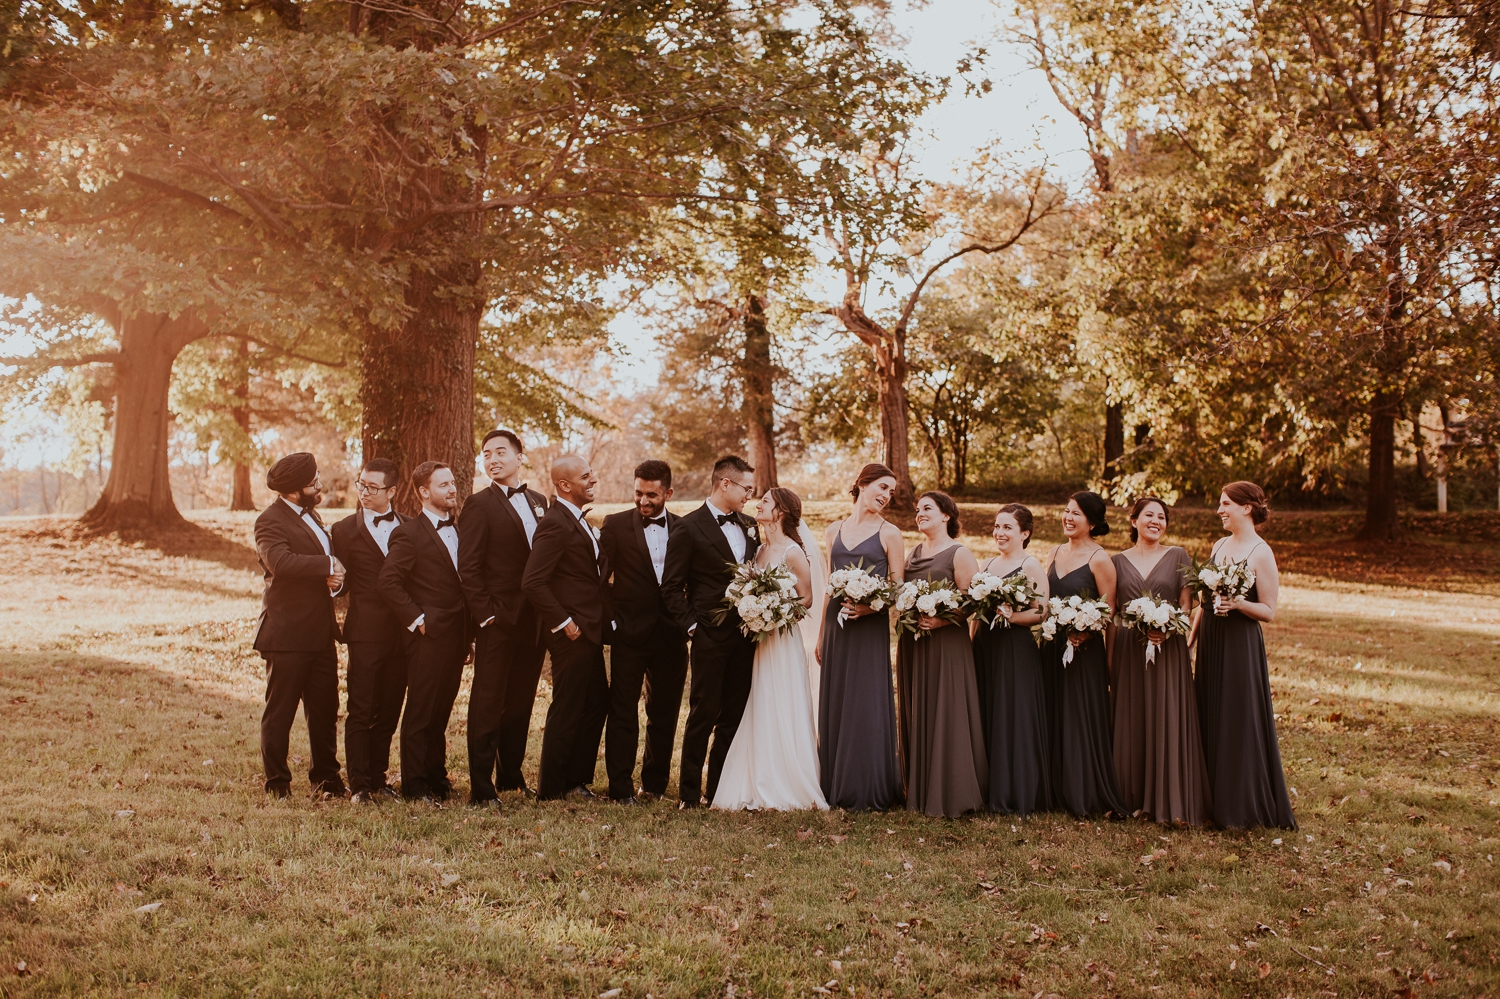 leesburg-virginia-oatlands-historic-house-wedding-photographer-planner-vendors 46.jpg